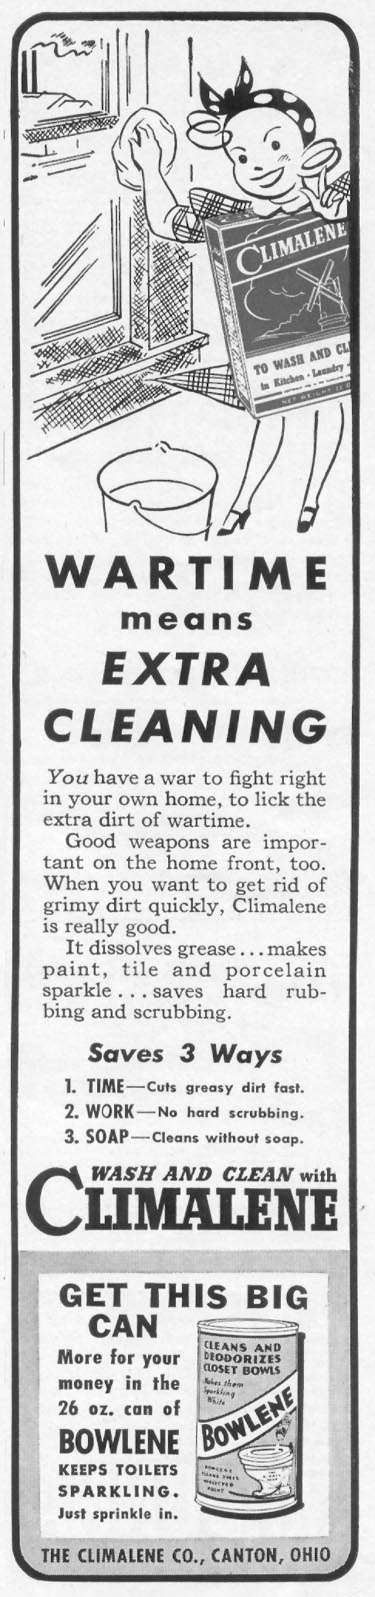 CLIMALENE DETERGENT WOMAN'S DAY 09/01/1942 p. 73